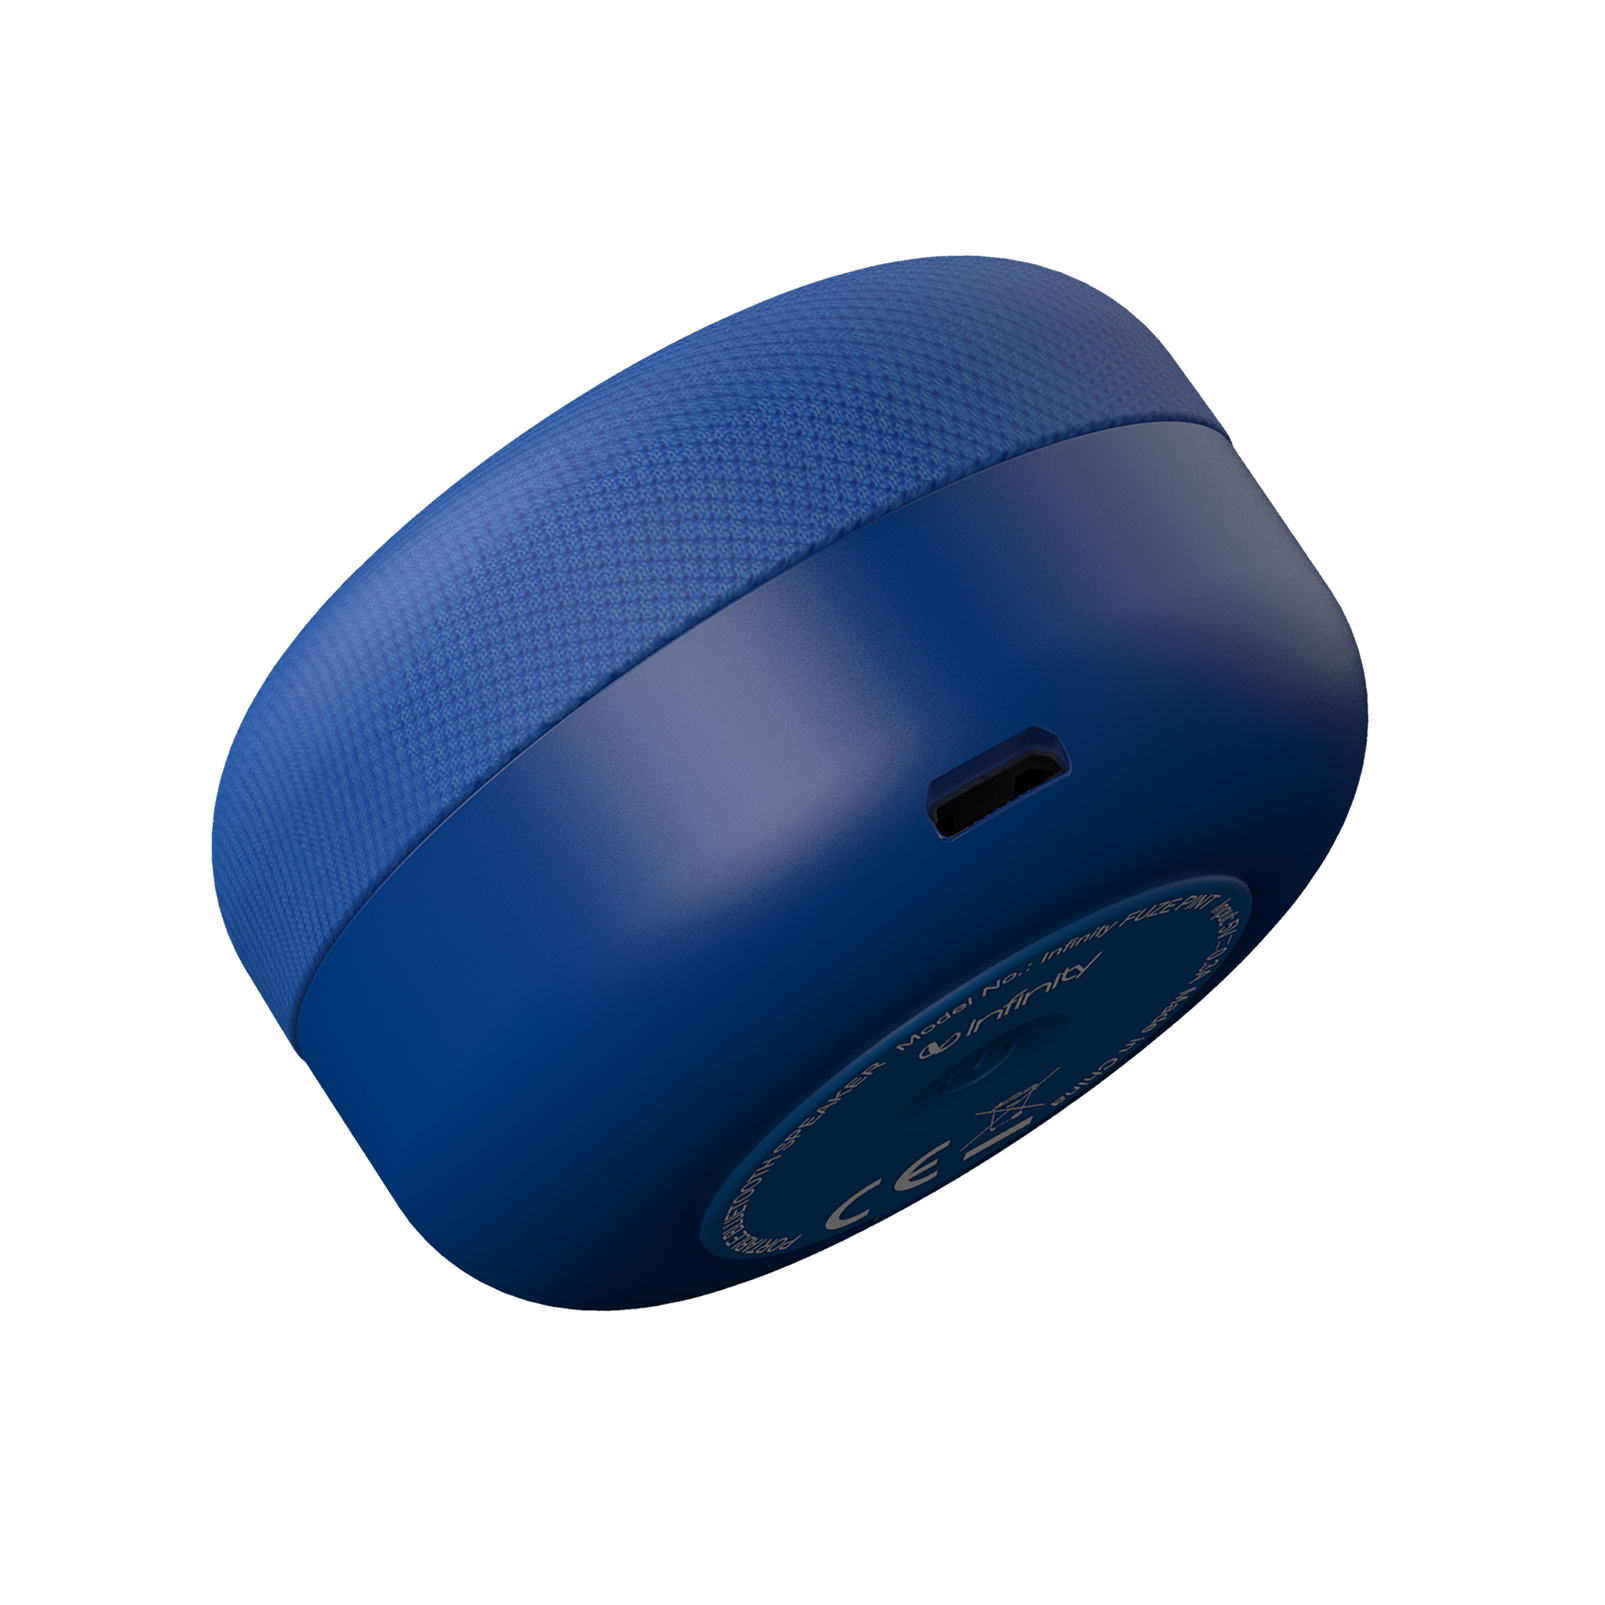 INFINITY FUZE PINT - Blue - Portable Wireless Speakers - Front